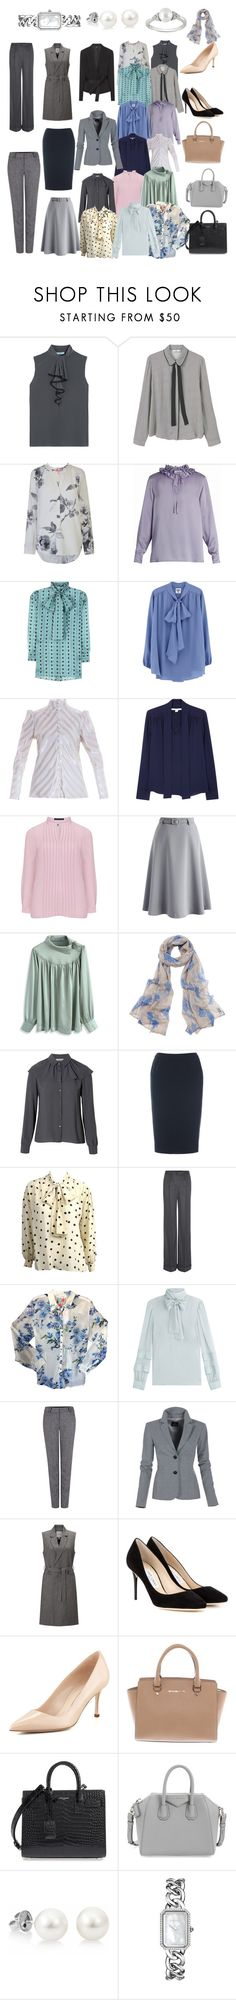 """""""Office romantic capsule"""" by anna-chasnyk ❤ liked on Polyvore featuring Prada, MANGO, Joules, Sonia Rykiel, Gucci, Hillier Bartley, Diane Von Furstenberg, Manon Baptiste, Chicwish and Bajra"""